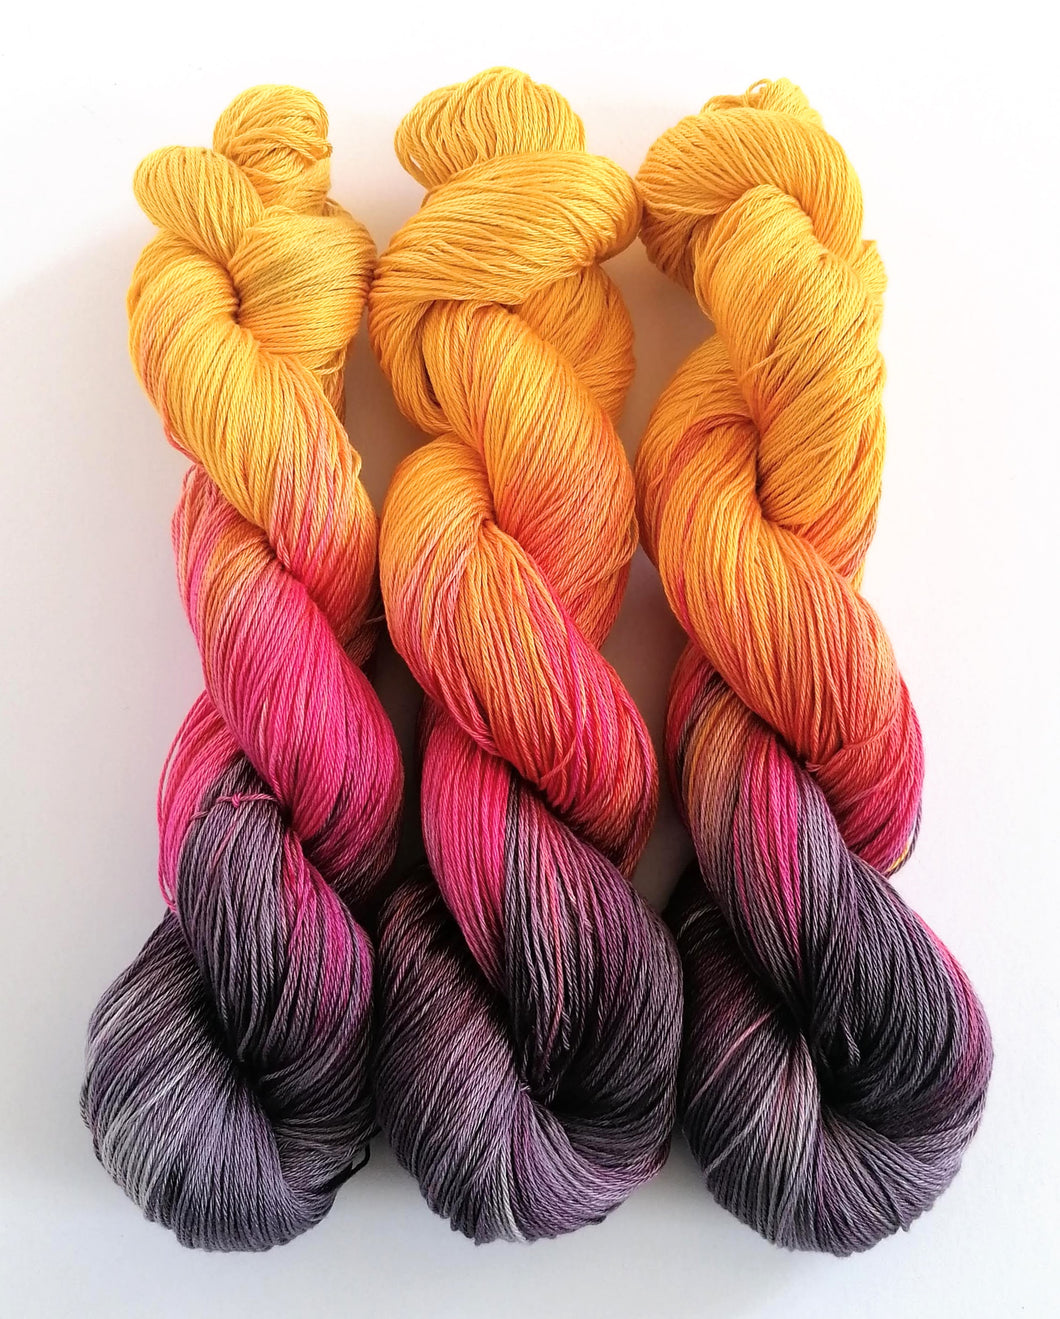 Gold, pink and deep purple, on Pima Cotton 4ply